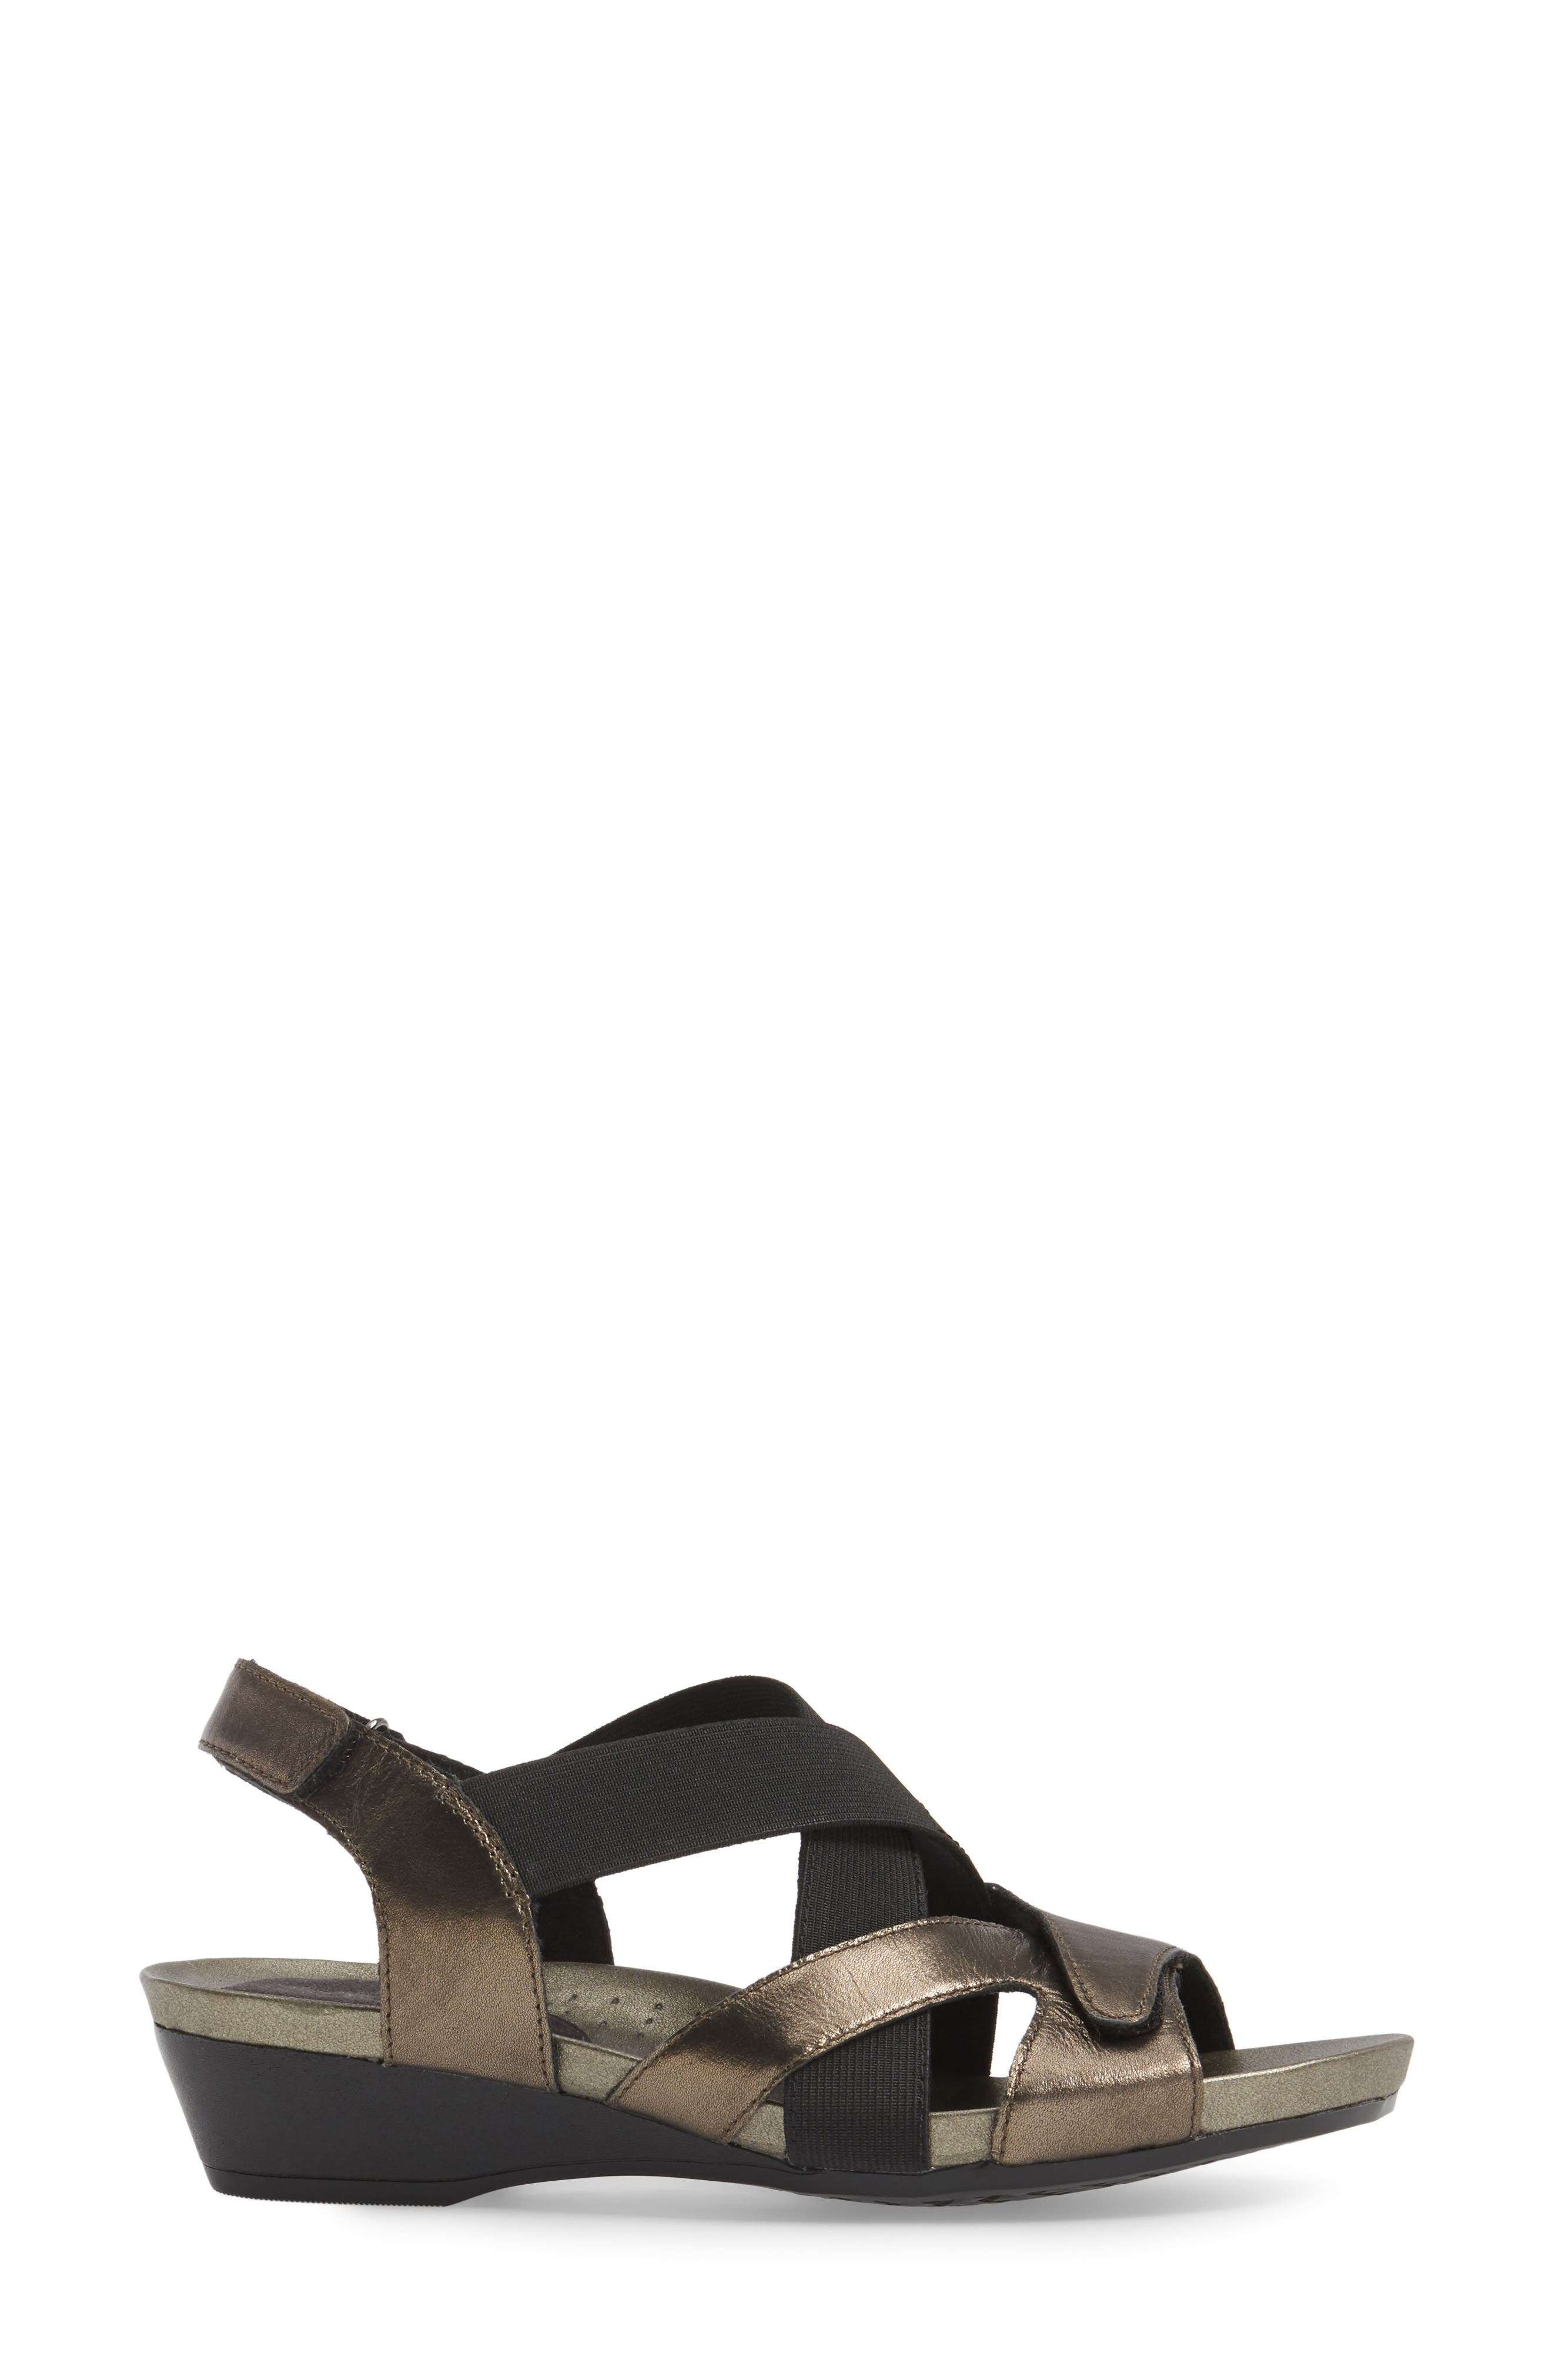 Standon Cross Strap Sandal,                             Alternate thumbnail 3, color,                             Pewter Fabric